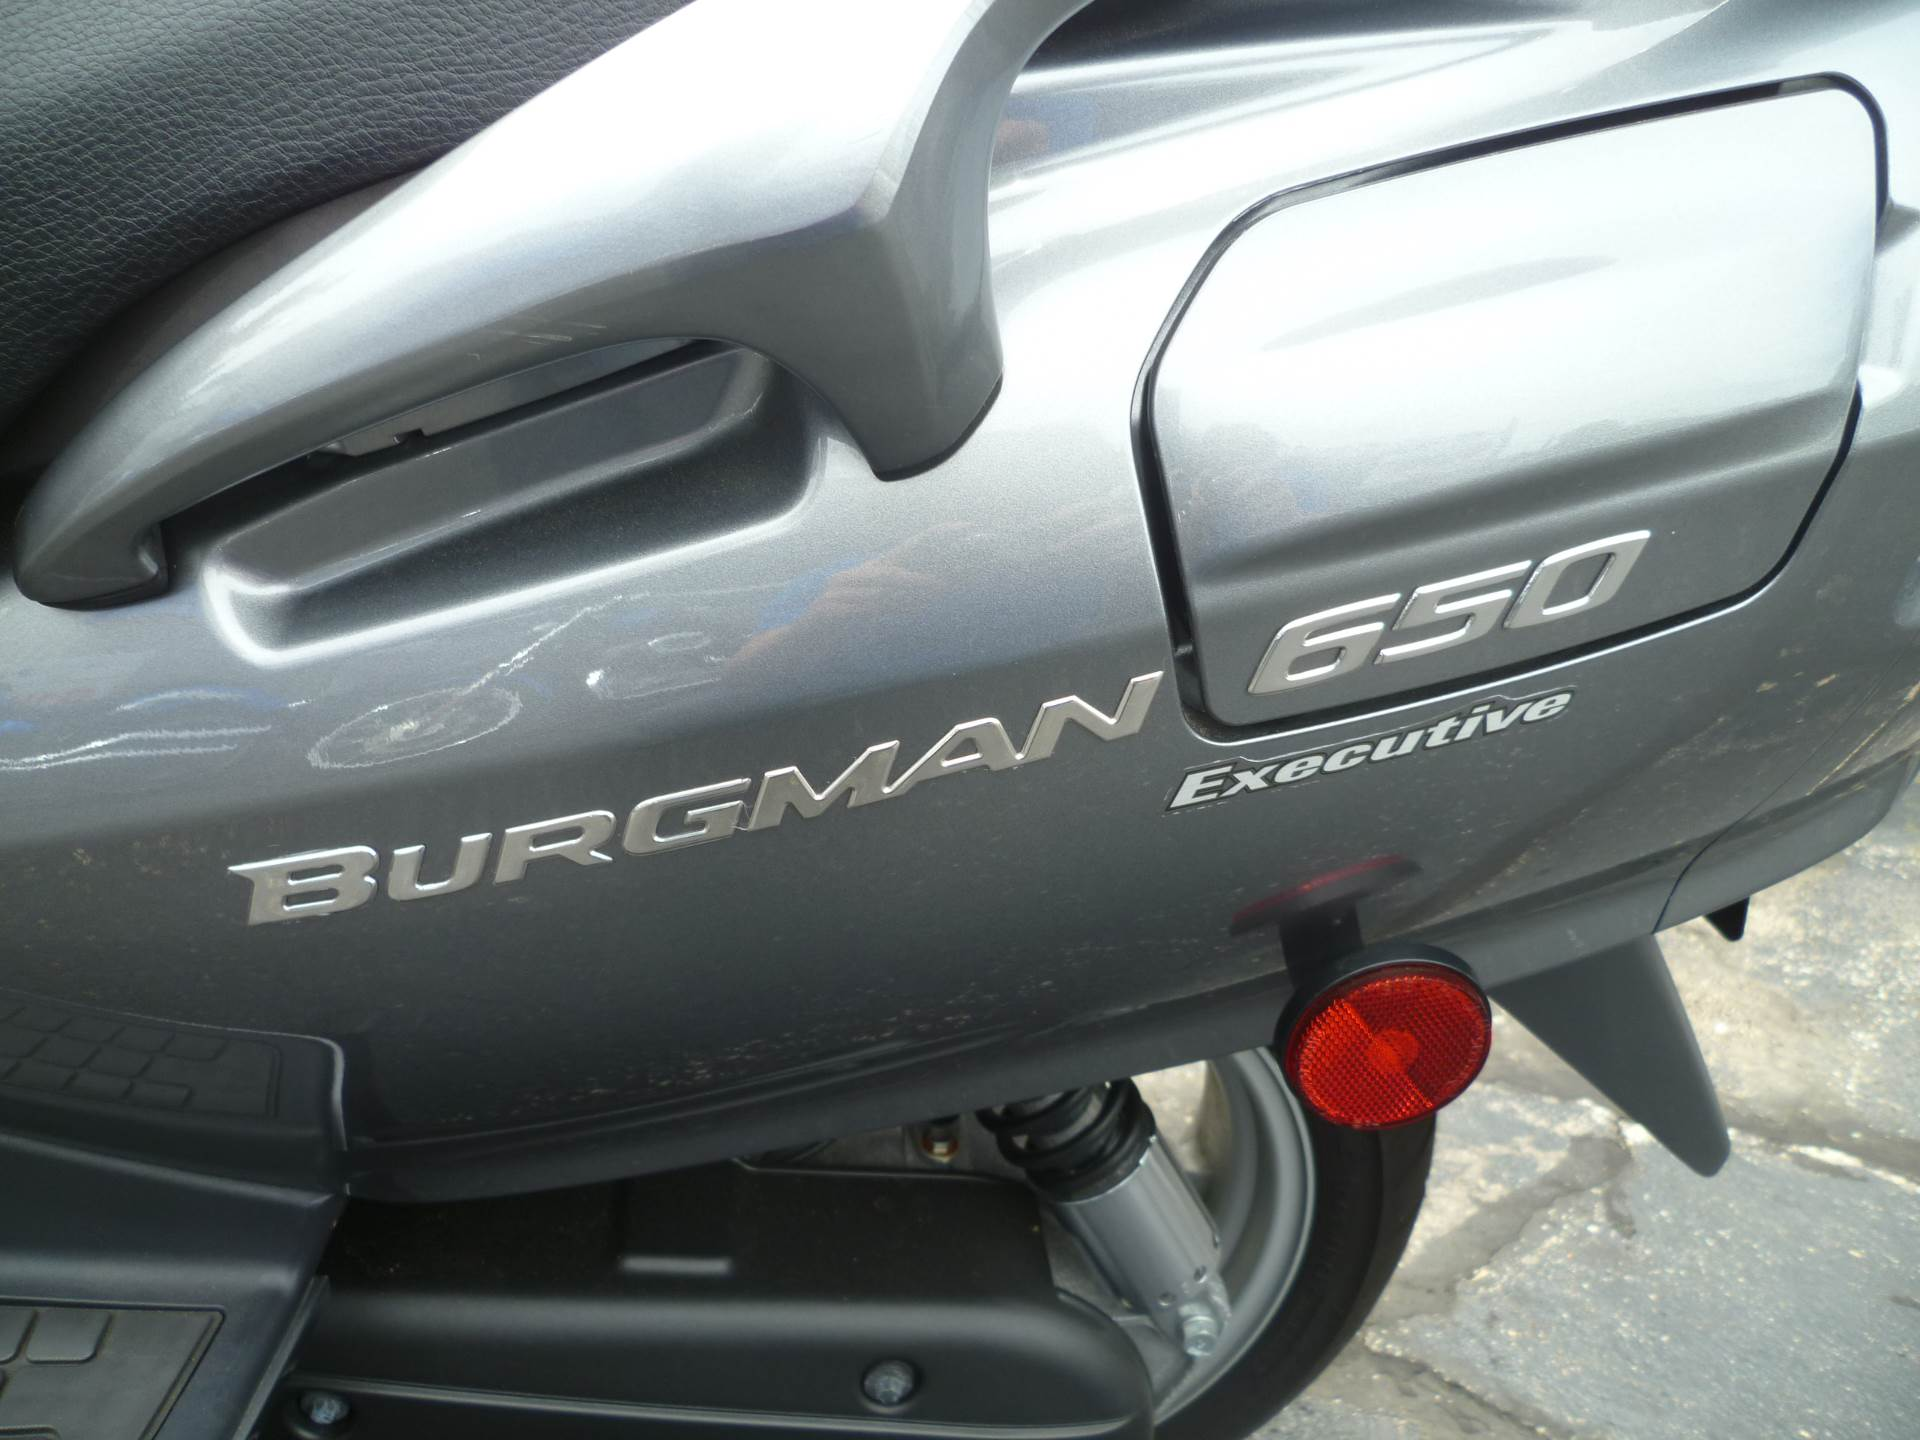 2011 Suzuki Burgman™ 650 Exec in Union Grove, Wisconsin